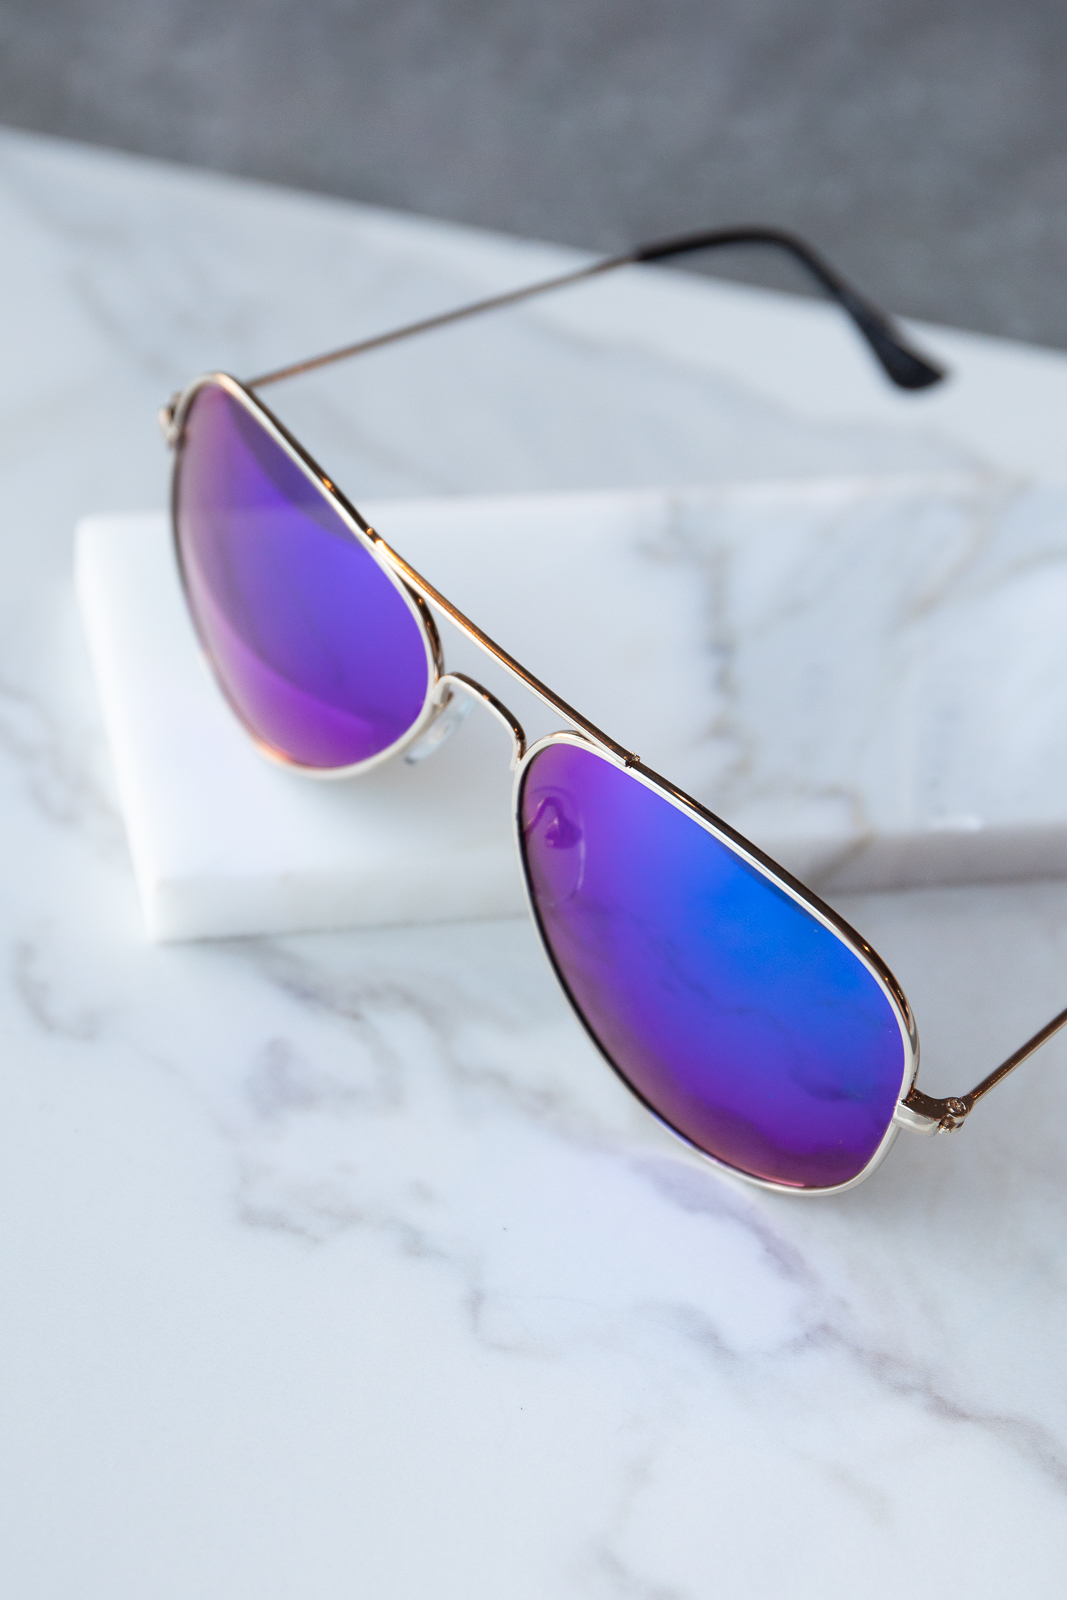 Royal Blue and Turquoise Tinted Metallic Aviator Sunglasses